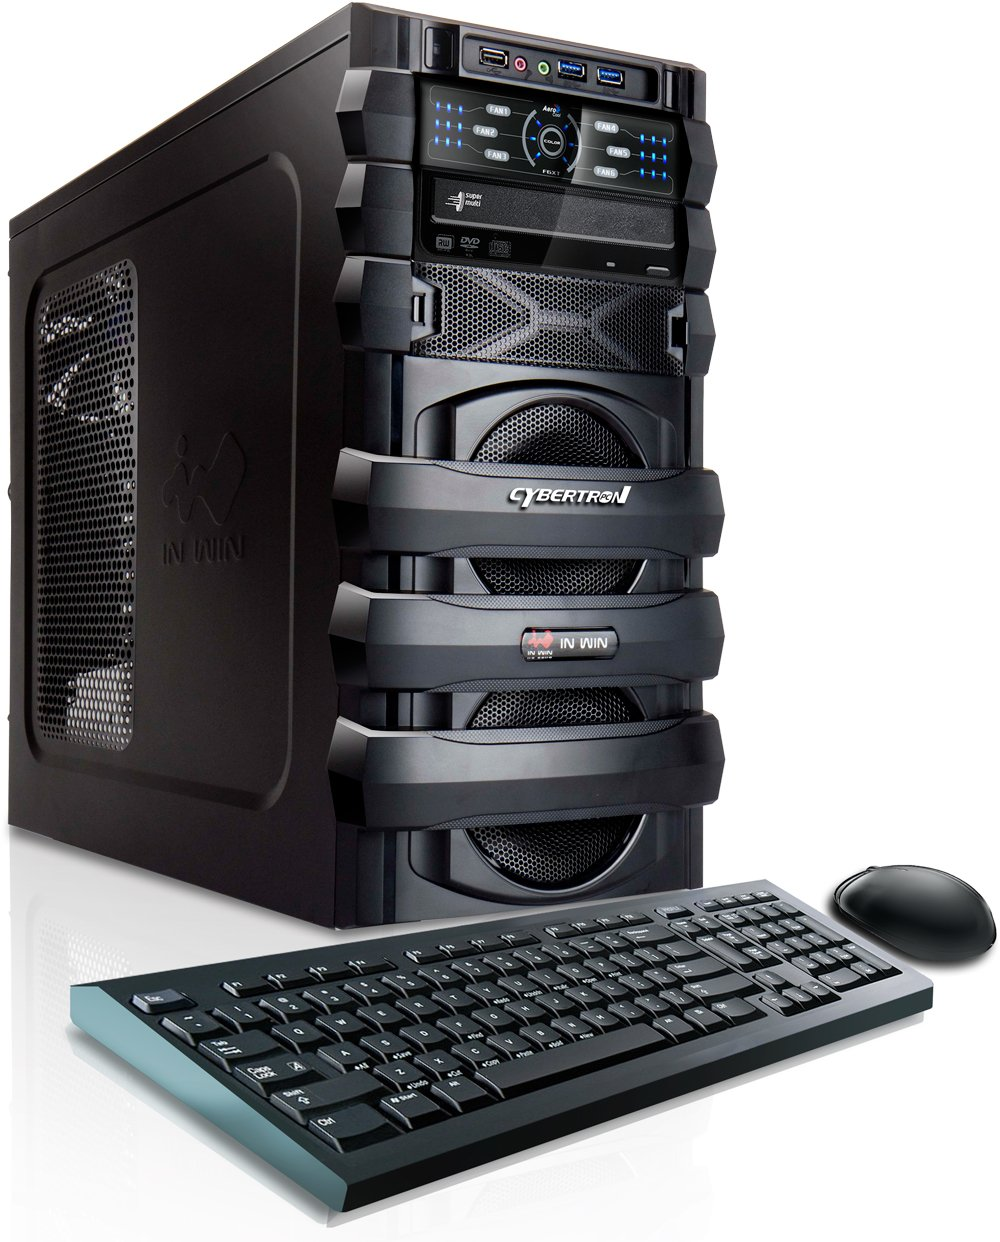 CybertronPC 5150 Review